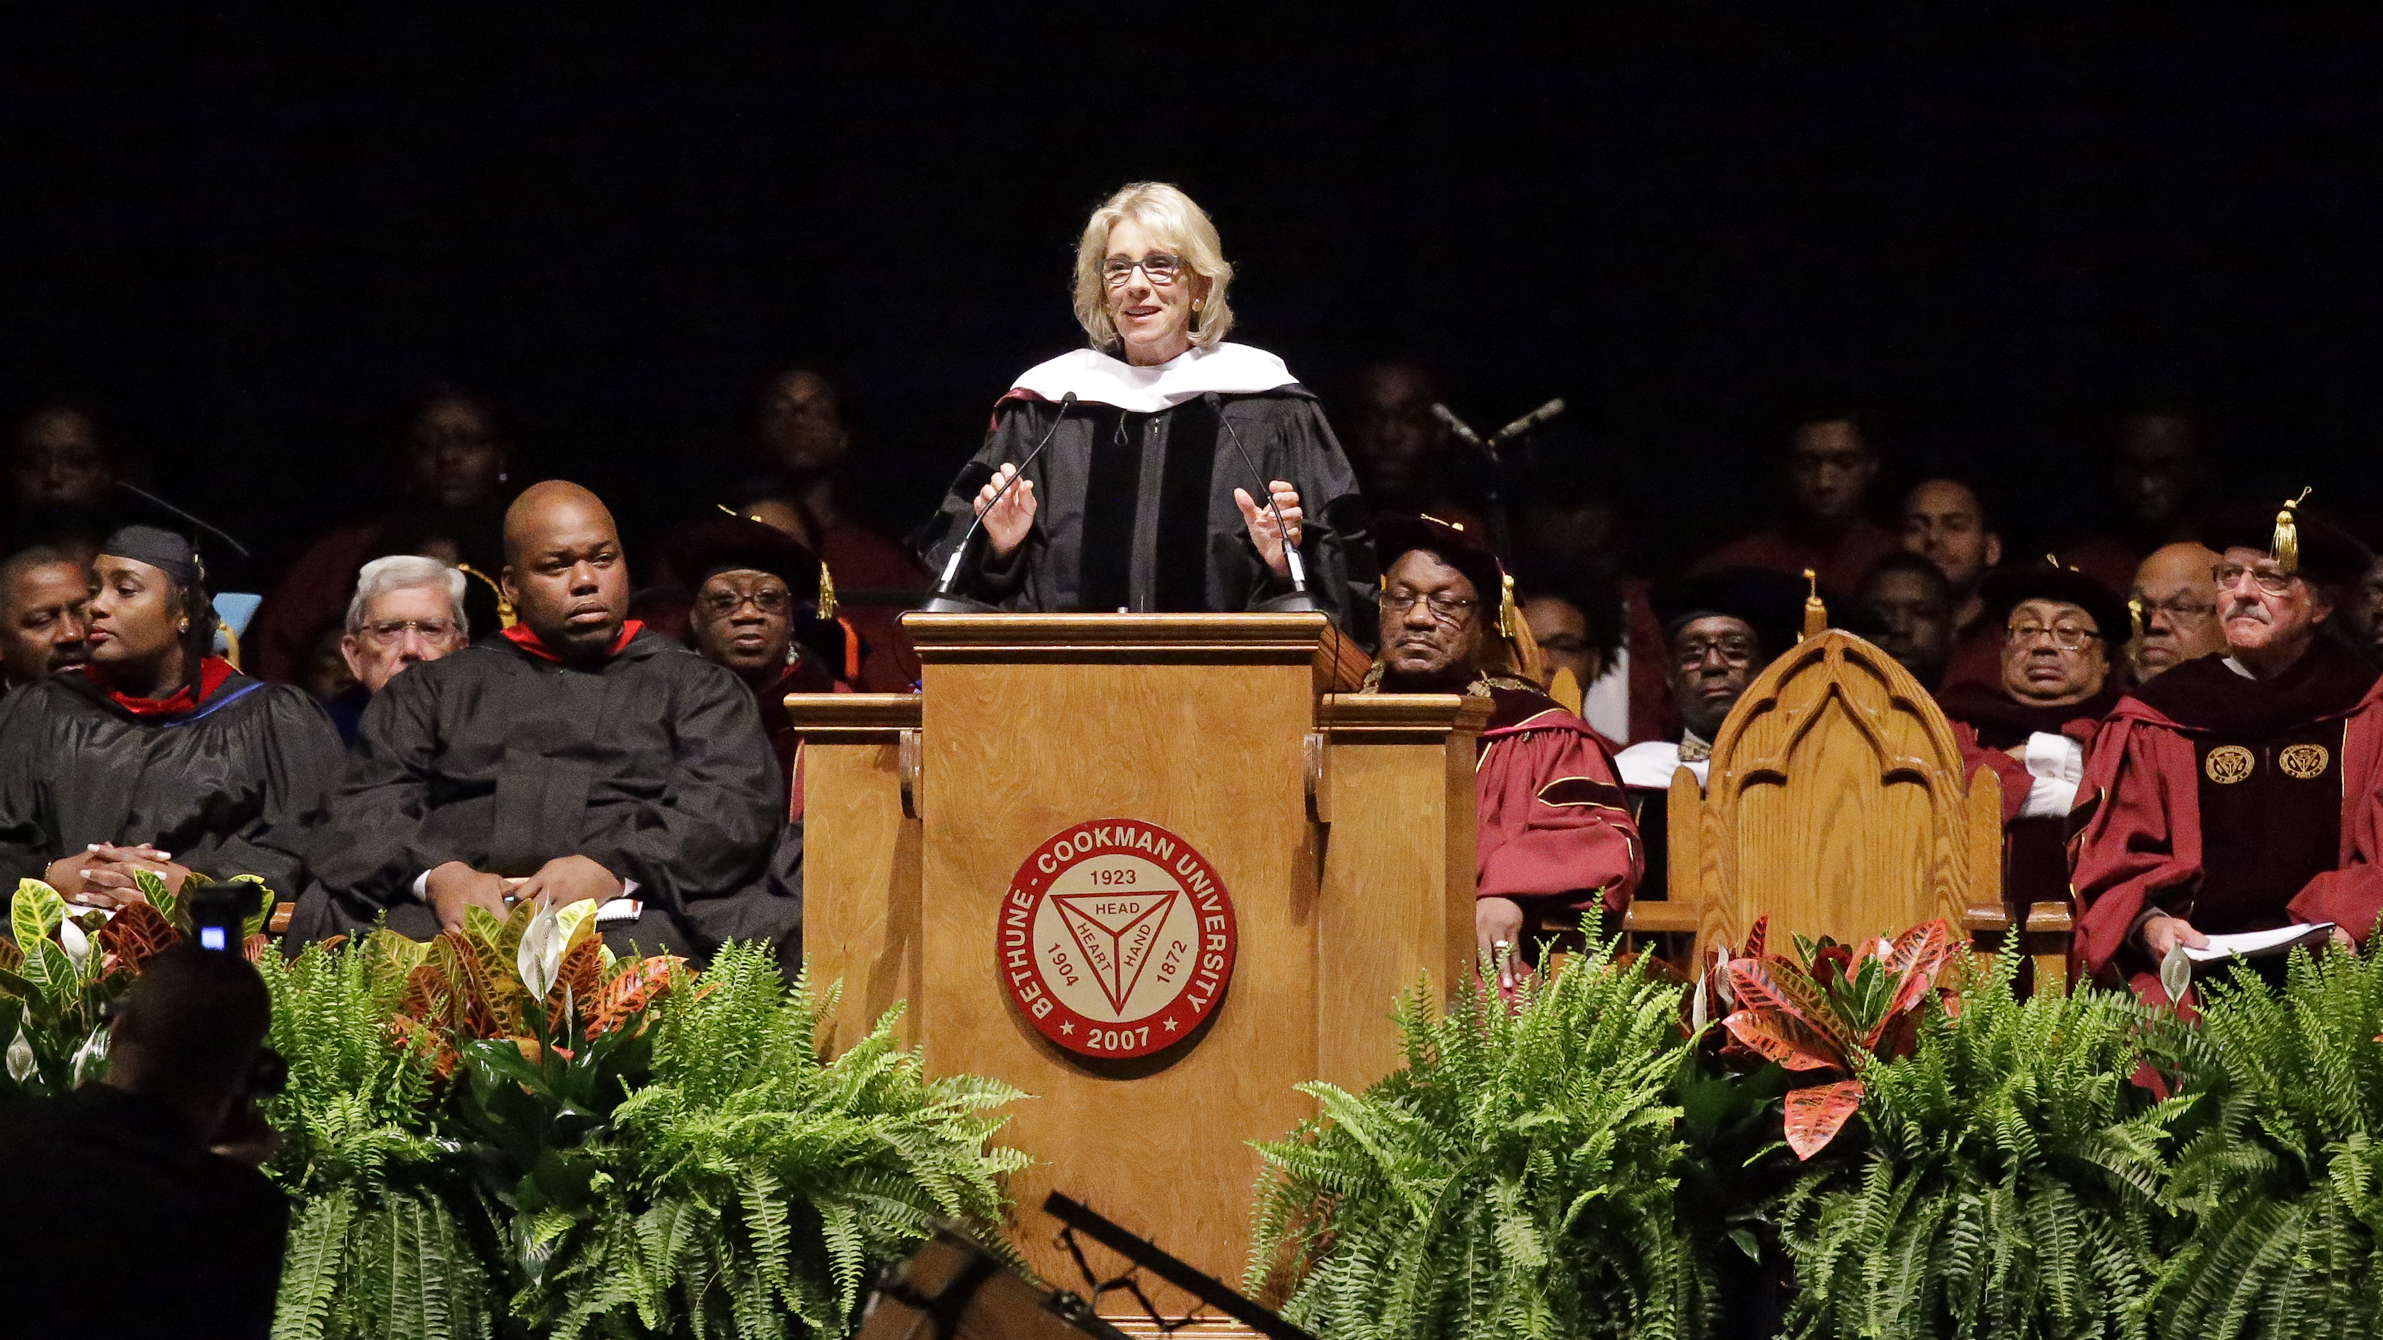 WATCH: Betsy DeVos Speaks Over Torrent Of Boos During Bethune-Cookman Speech